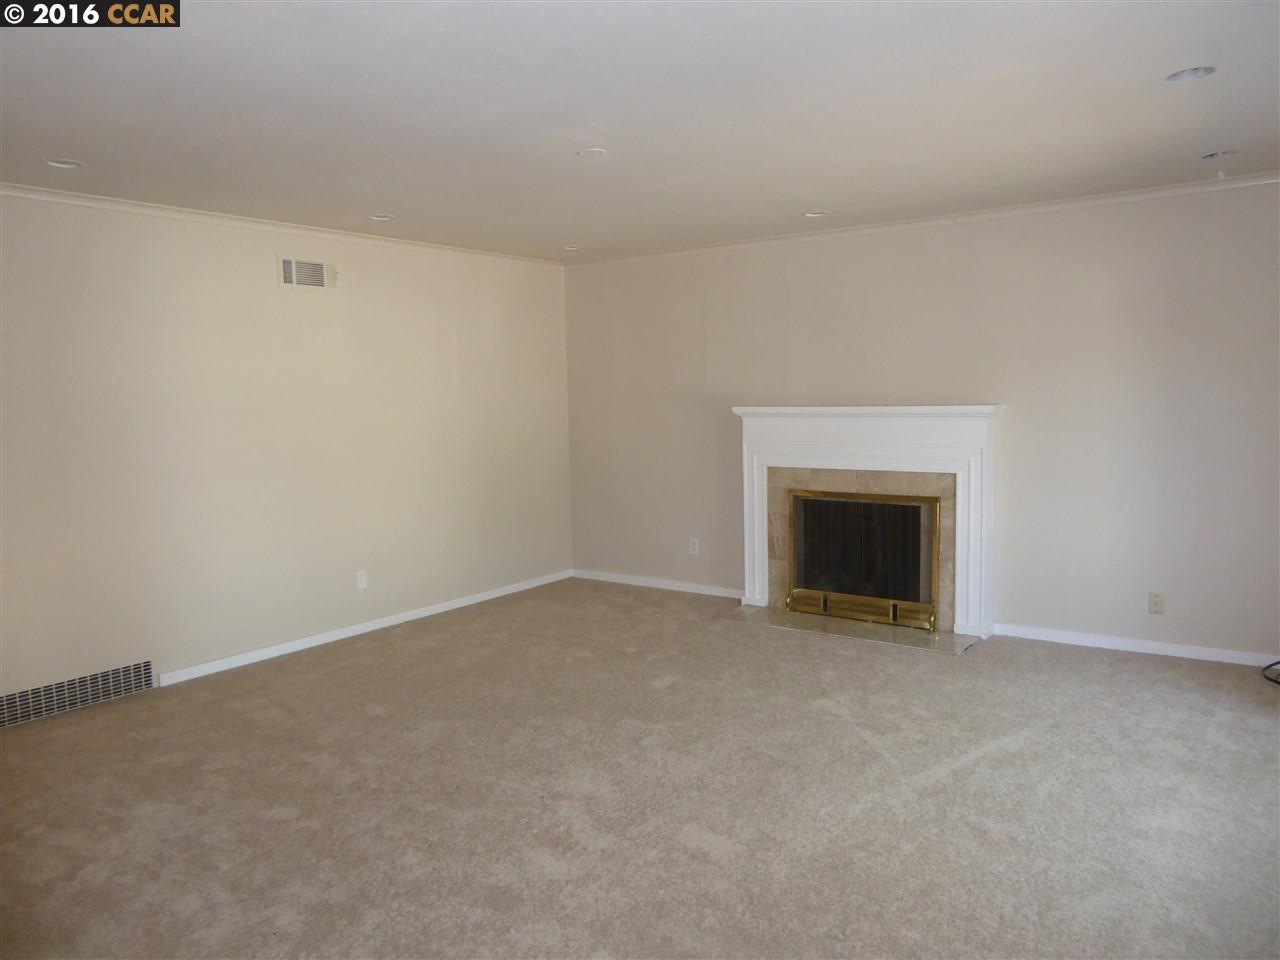 Additional photo for property listing at 623 W 14Th Street  Antioch, カリフォルニア 94509 アメリカ合衆国